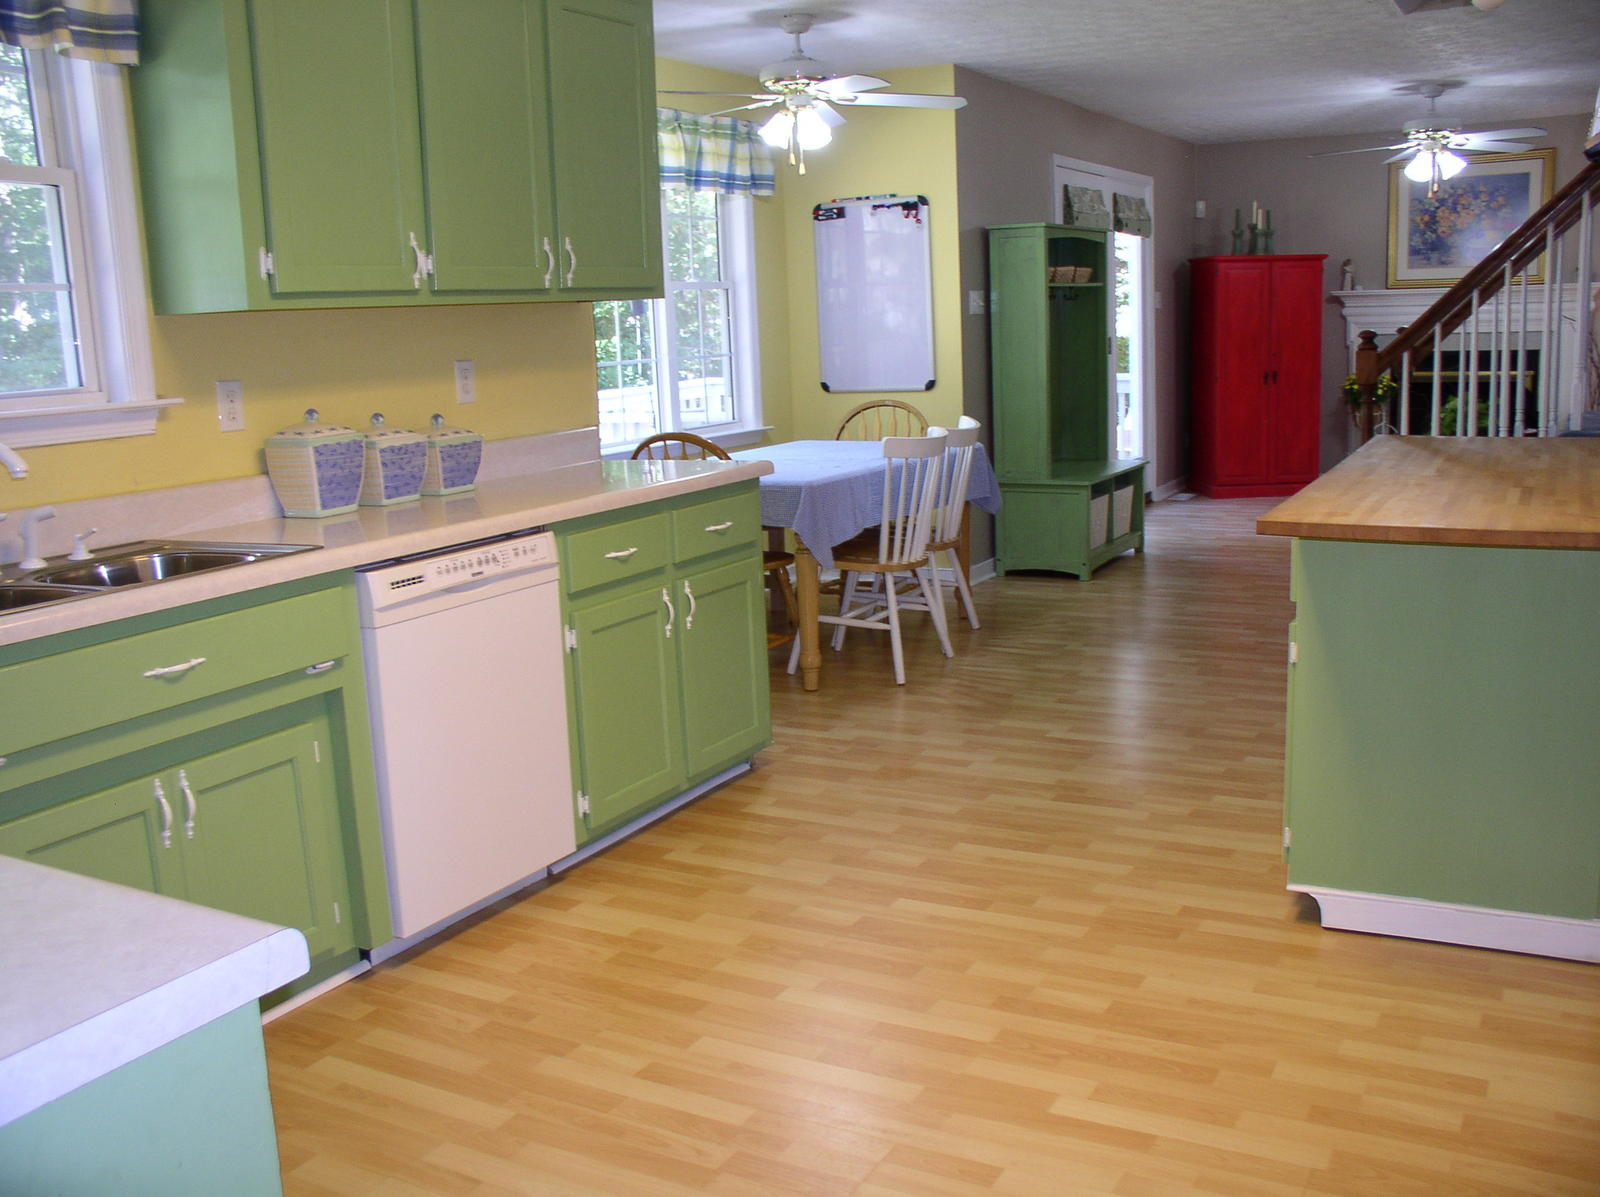 Painting your kitchen cabinets painting tips from the pros for Kitchen wall paint design